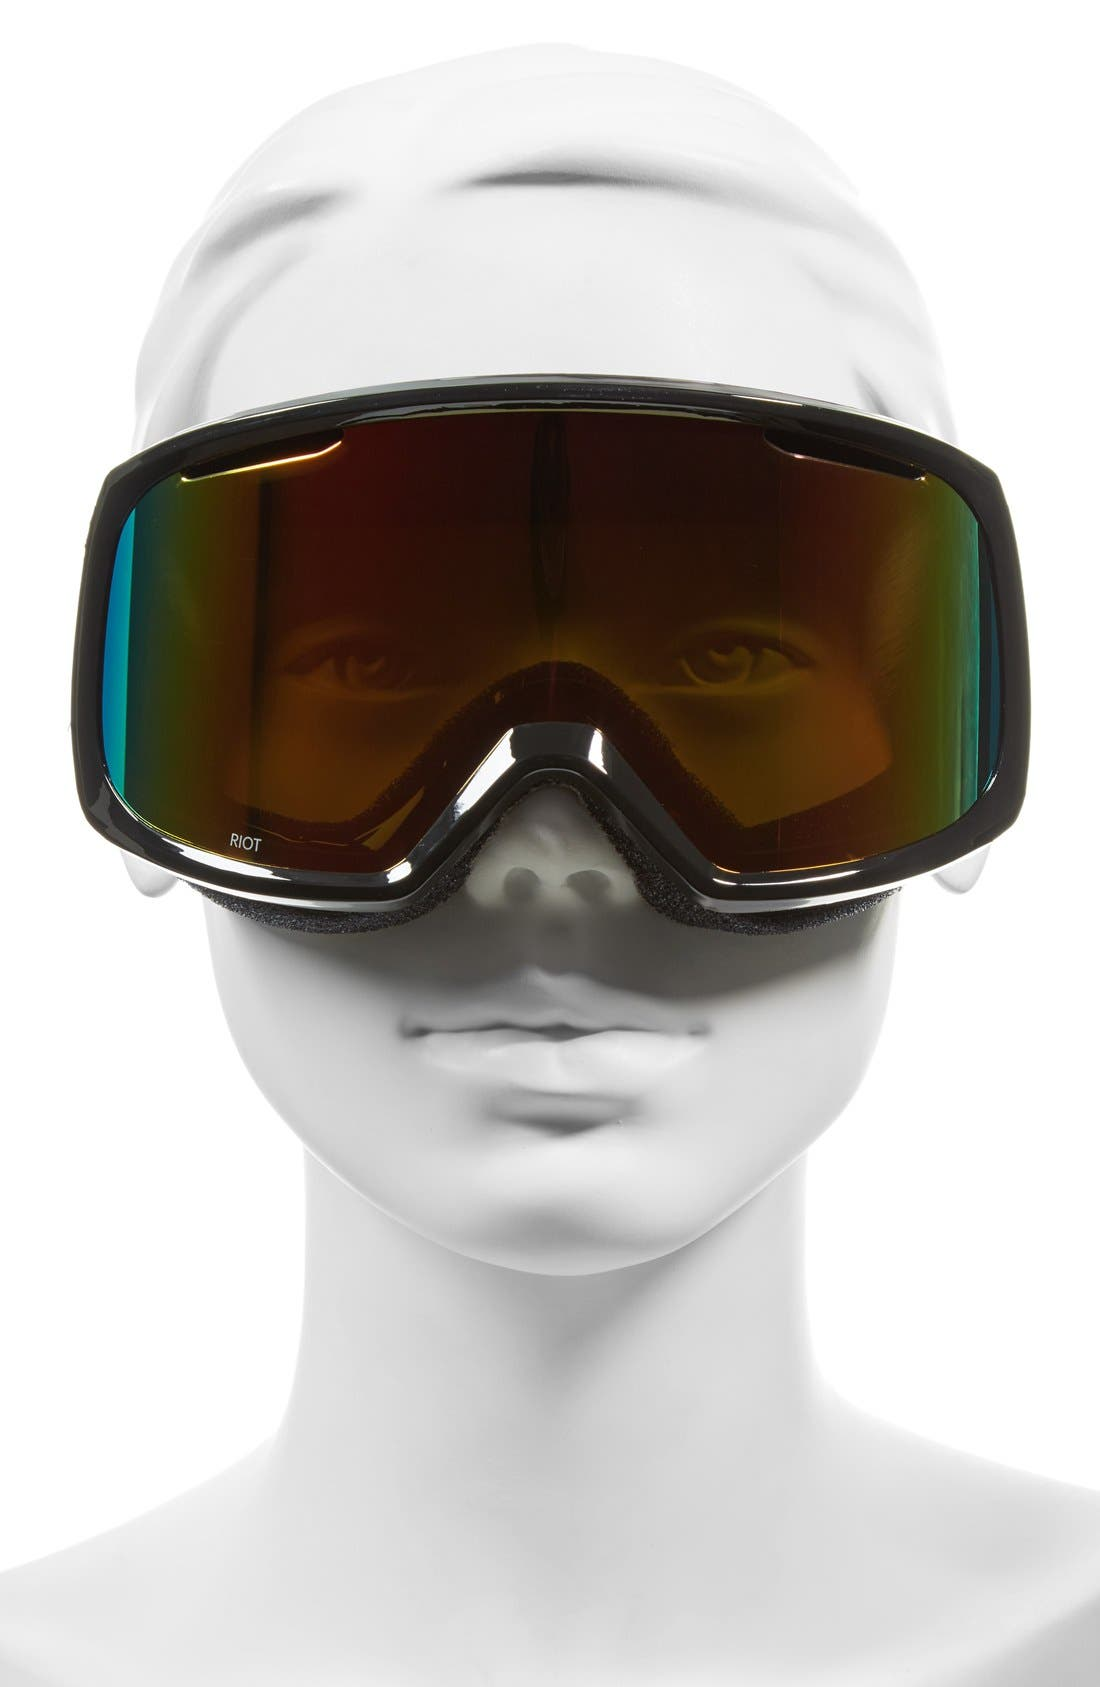 'Riot' Snow Goggles,                             Alternate thumbnail 2, color,                             001